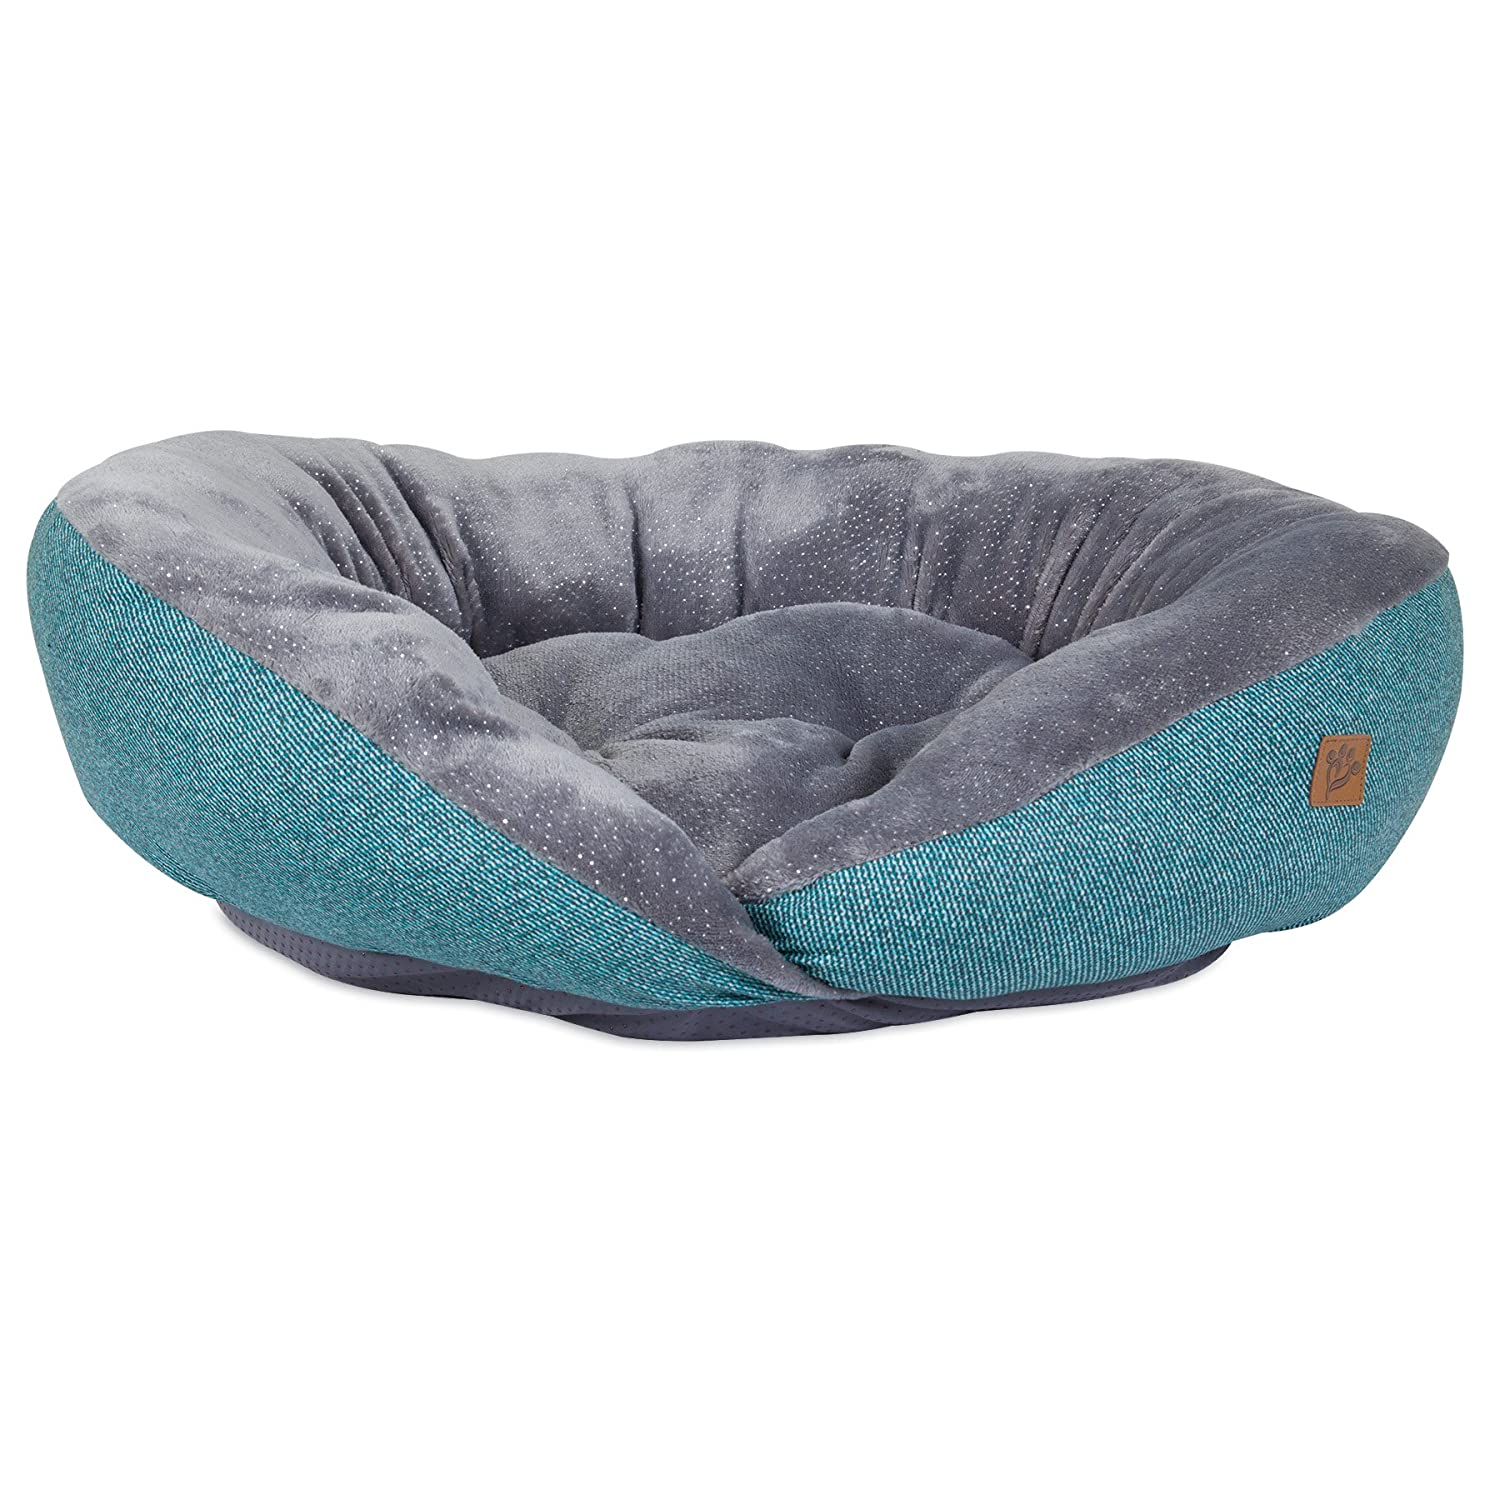 Mutt Nation Fueled by Miranda Lambert Plush Lounger Dog Bed in Denim Blue